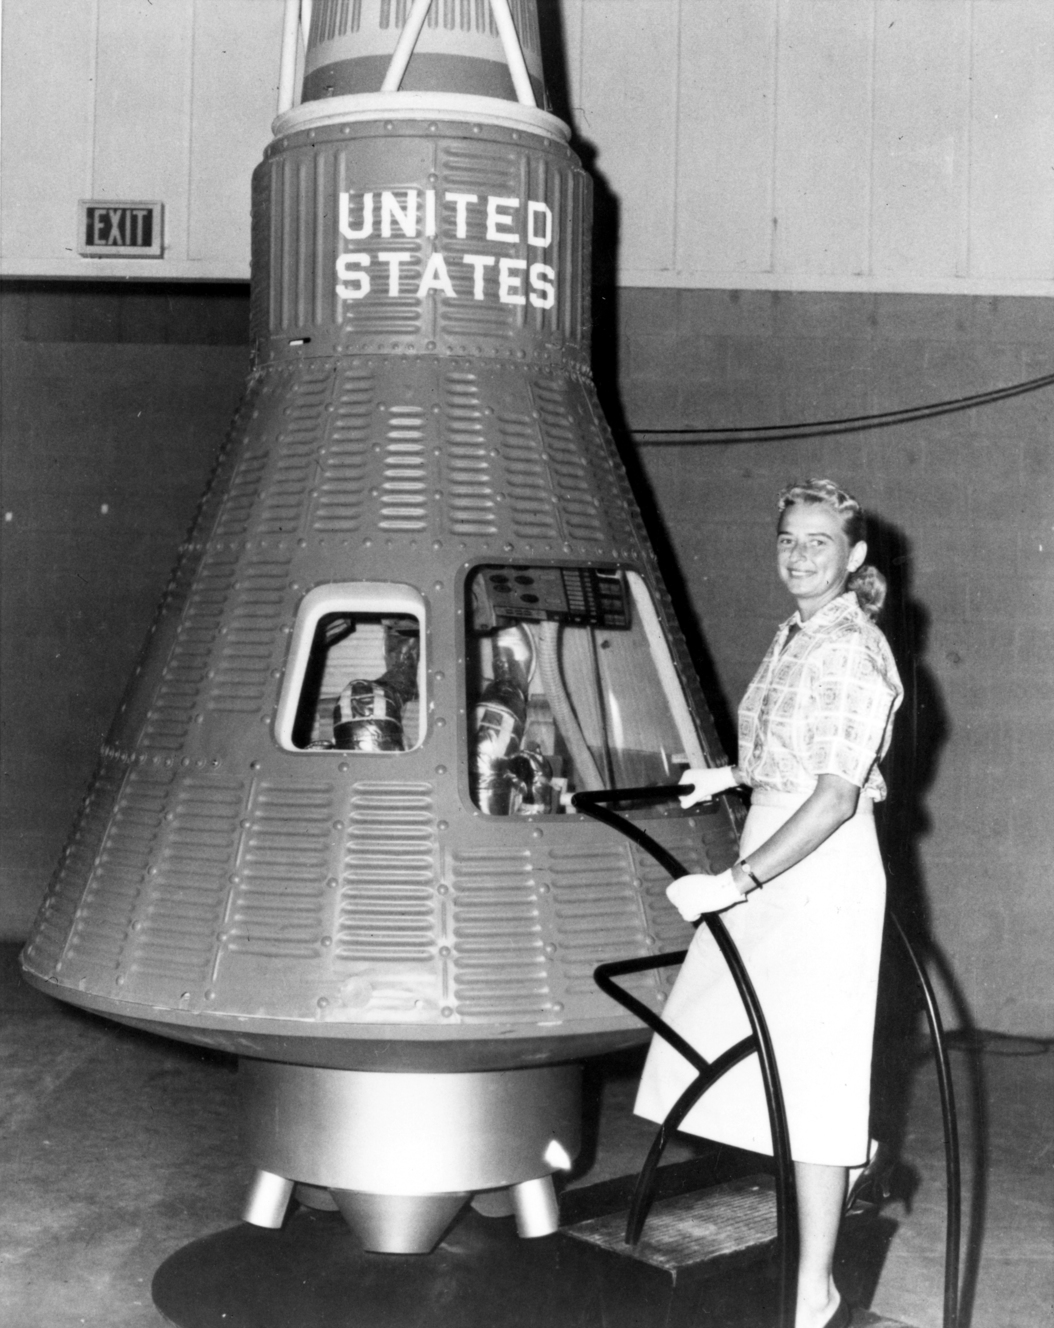 Although Jerrie Cobb never flew in space, she and 24 other women underwent physical tests similar to those taken by the Mercury astronauts with the belief that she might become an astronaut trainee.